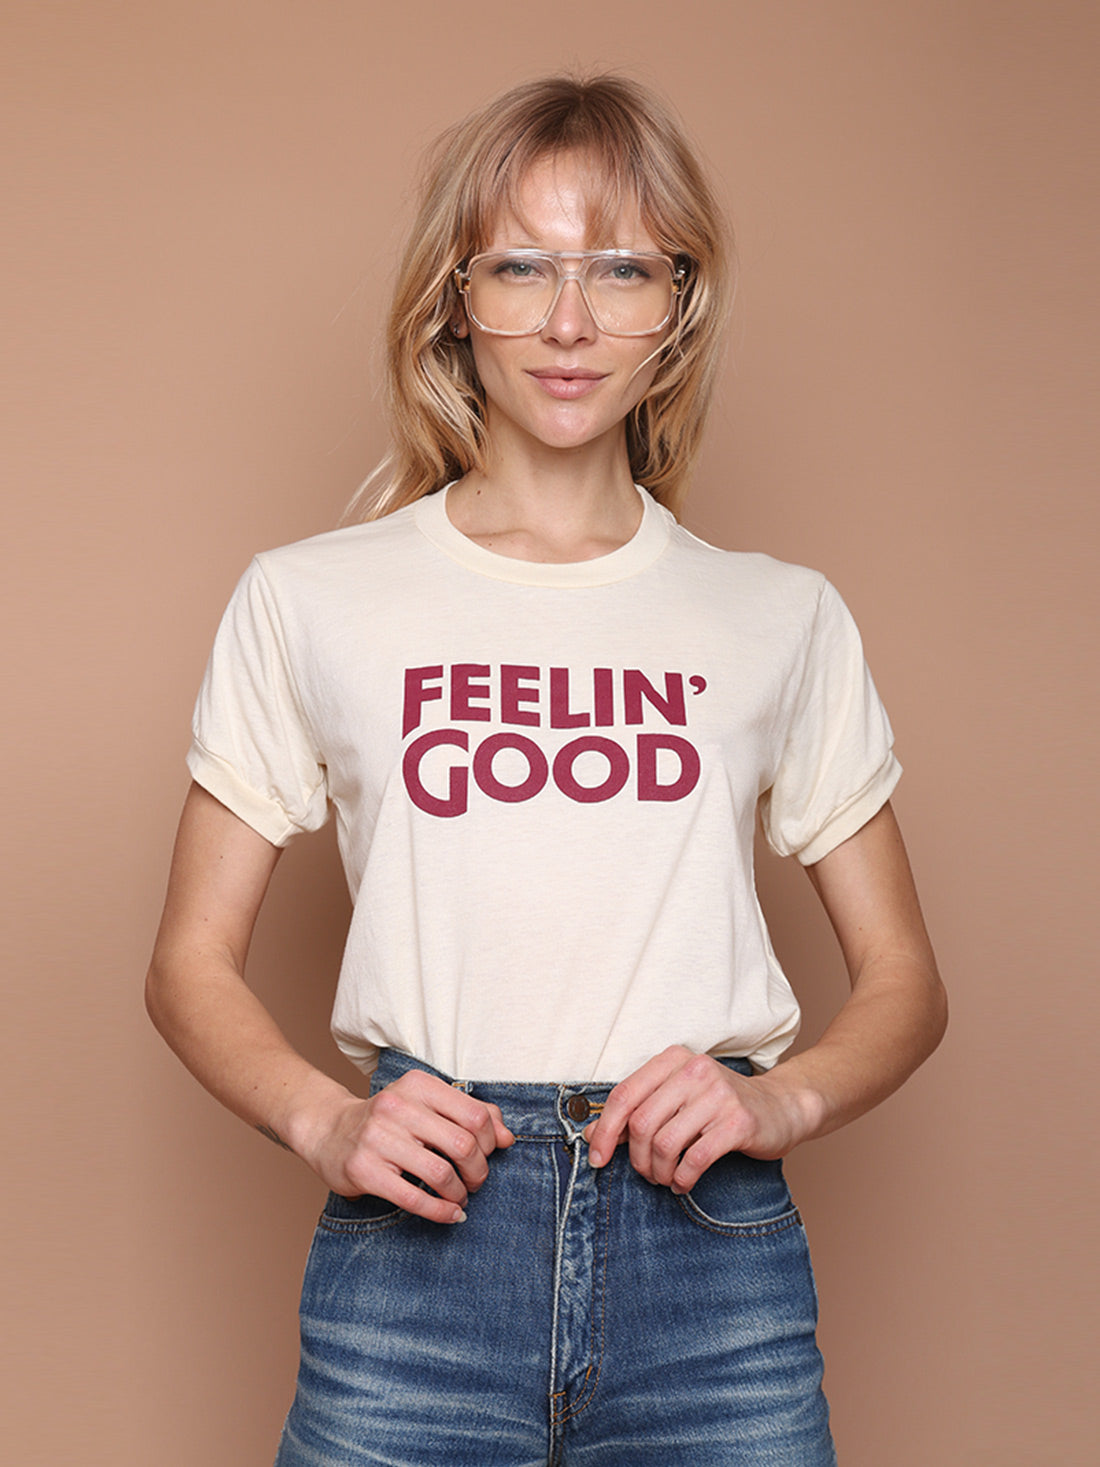 Camp Feelin' Good Ringer Tee